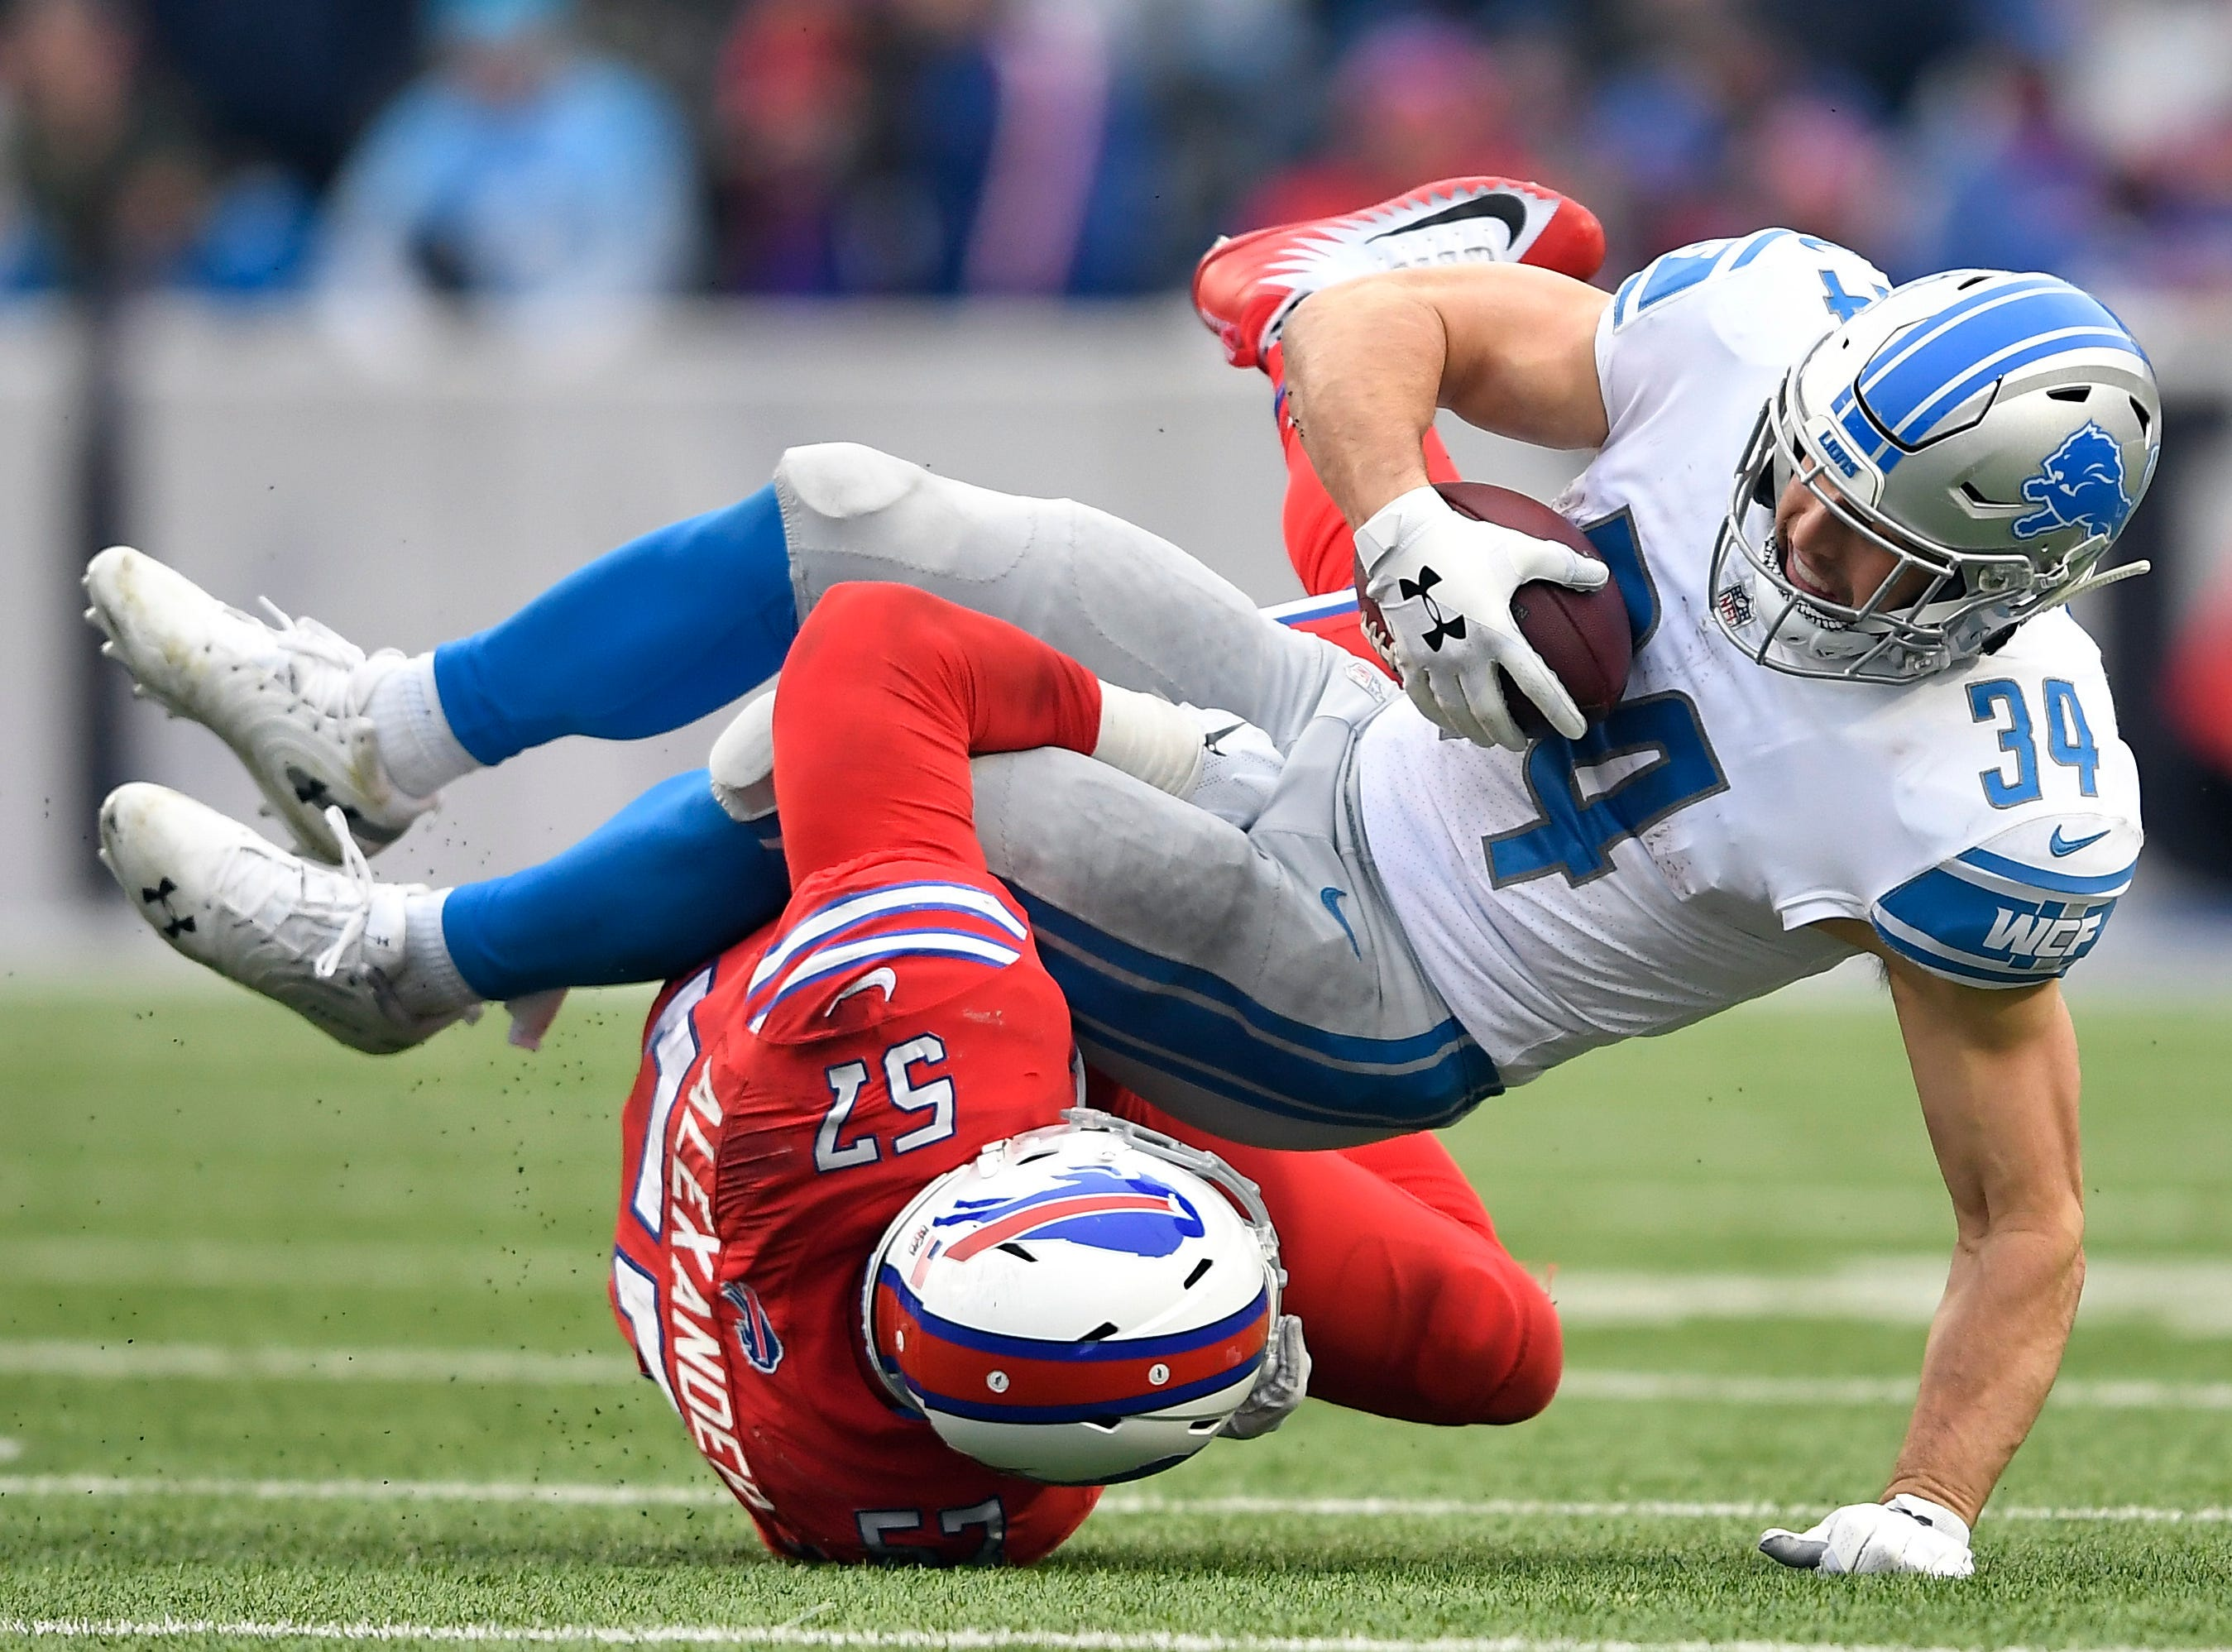 Detroit Lions running back Zach Zenner (34) is tackled by Buffalo Bills outside linebacker Lorenzo Alexander (57) during the second half.